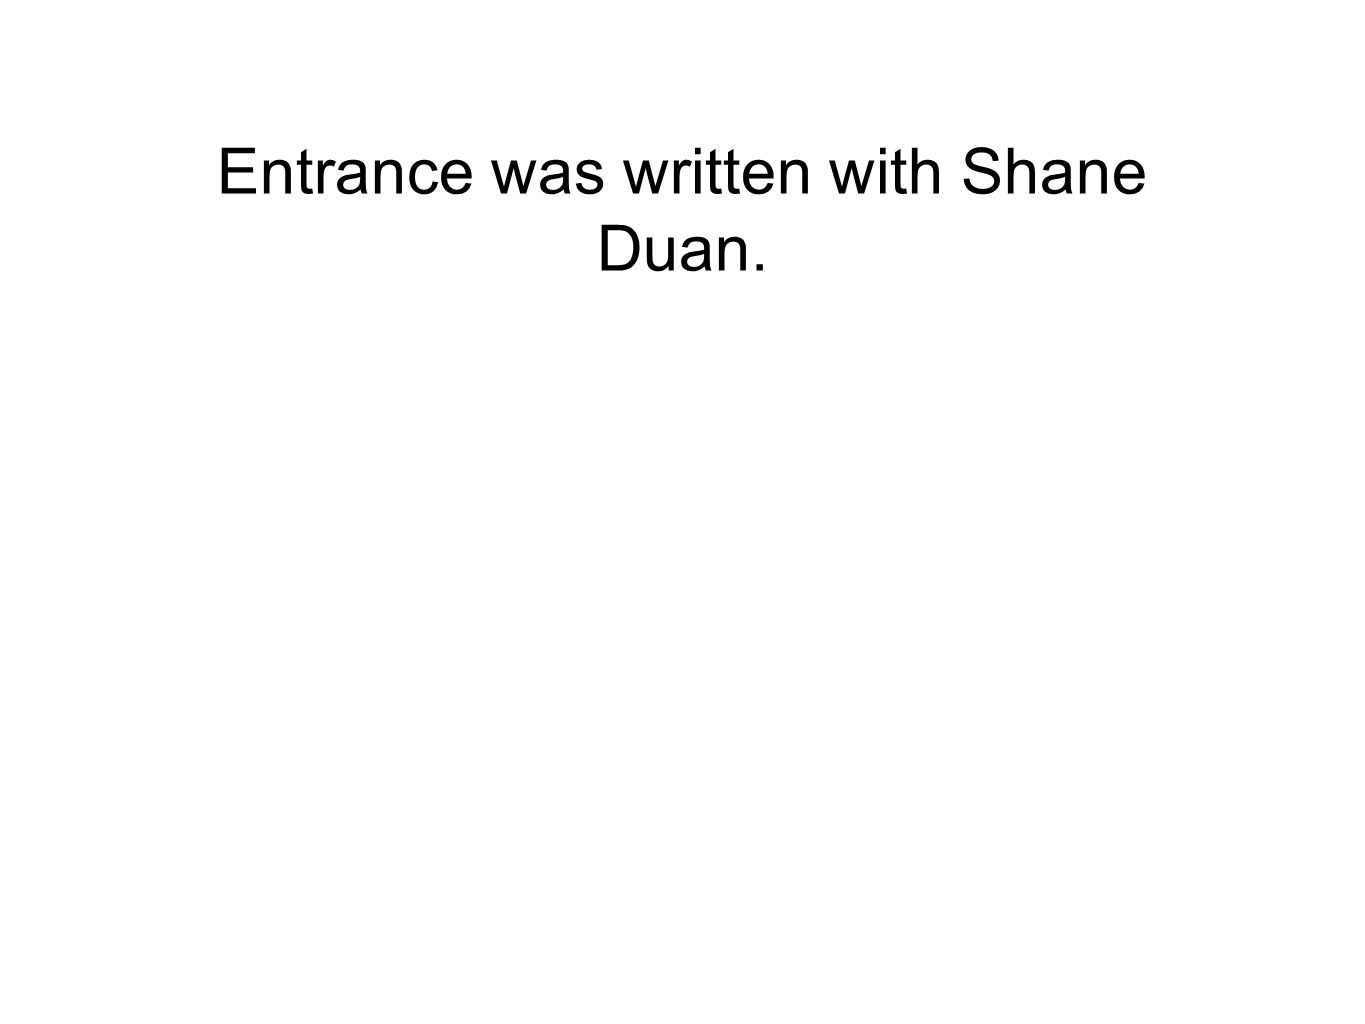 Entrance was written with Shane Duan.